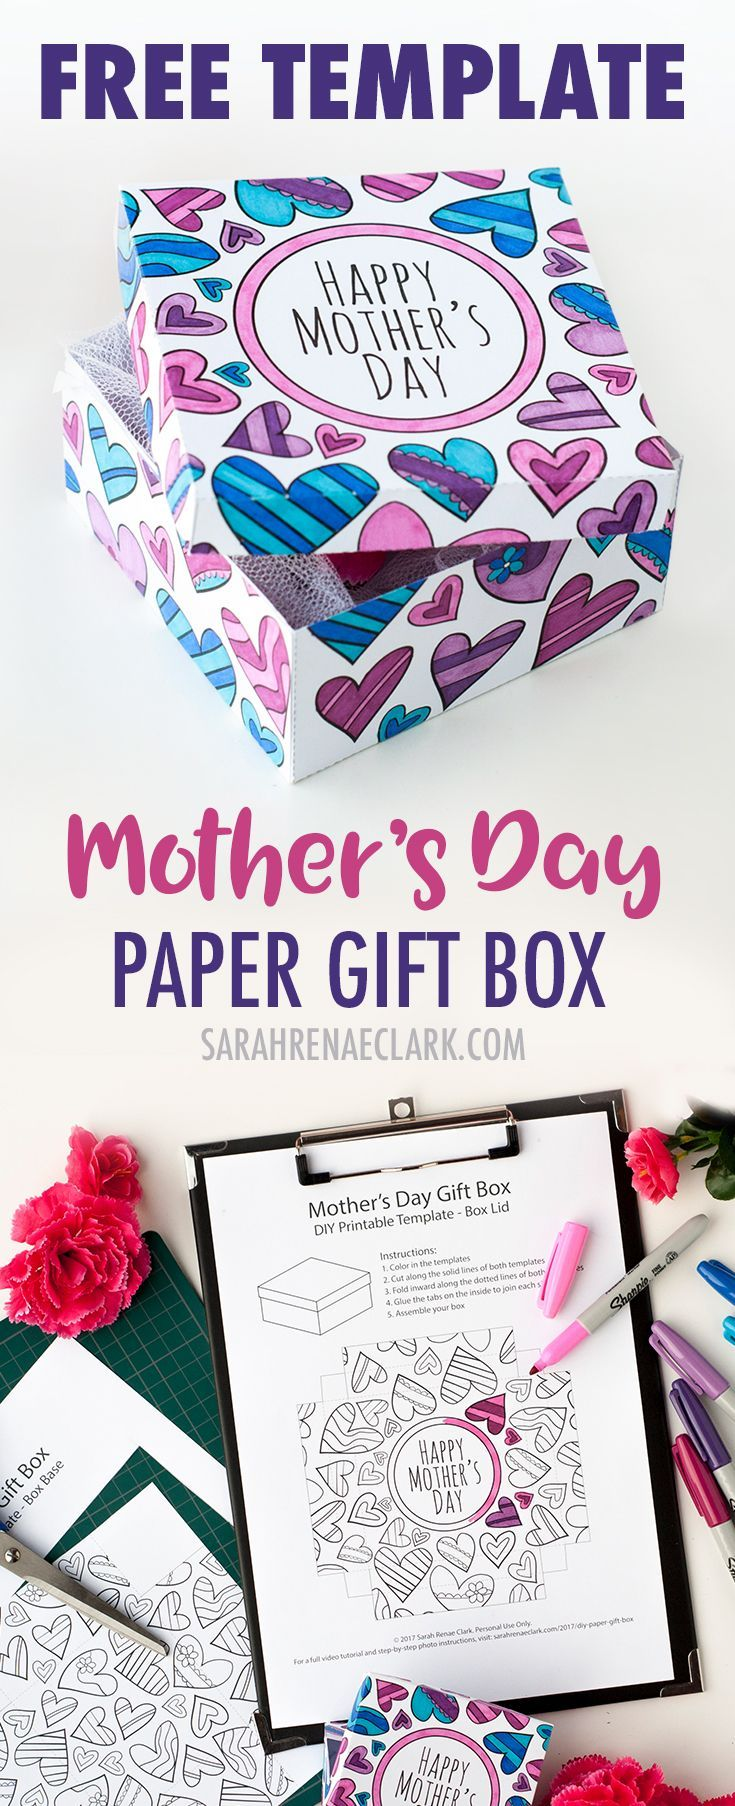 Download this free printable paper gift box template to